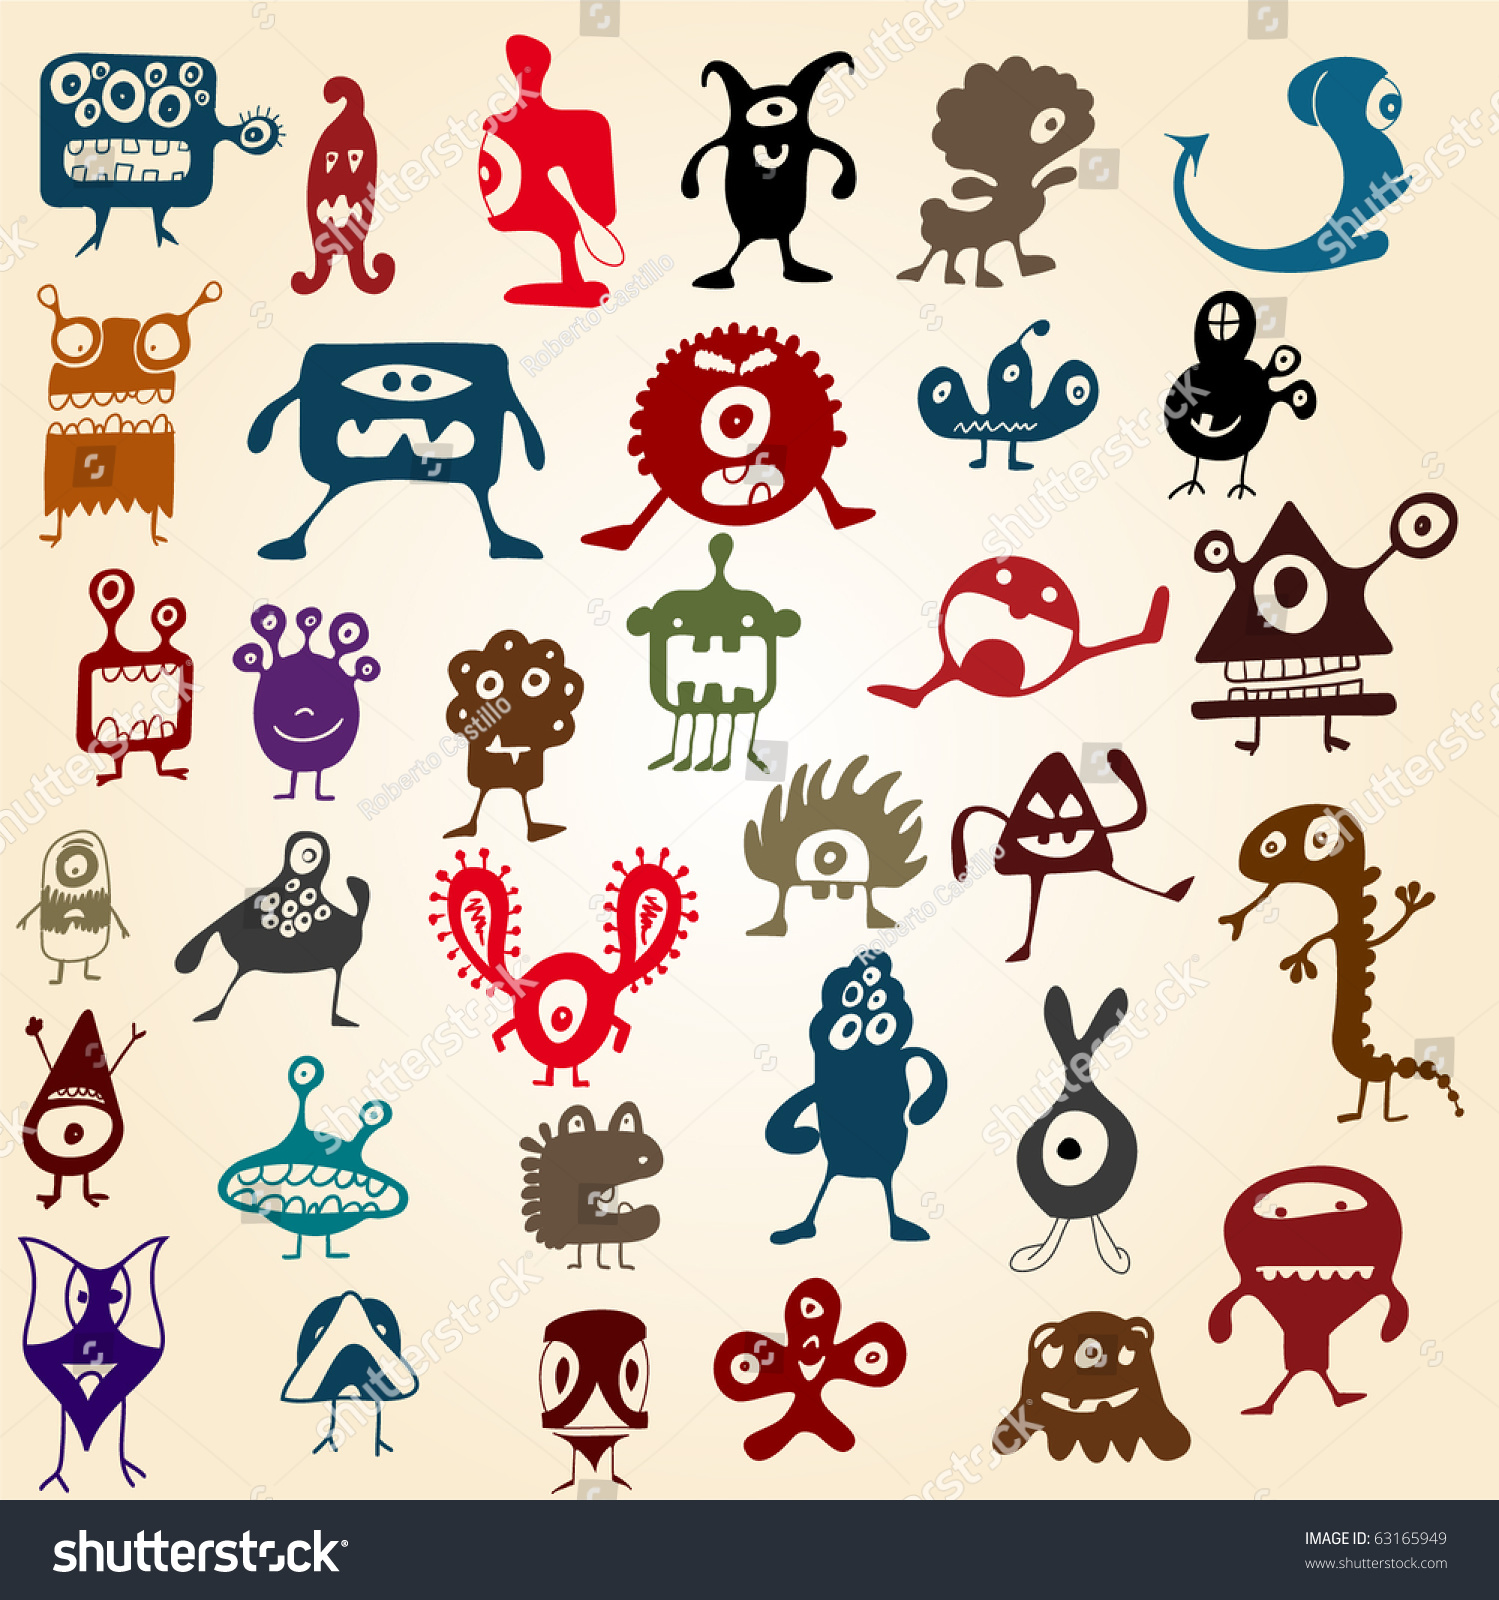 Many Cute Doodle Monsters Stock Vector Illustration 63165949 ...